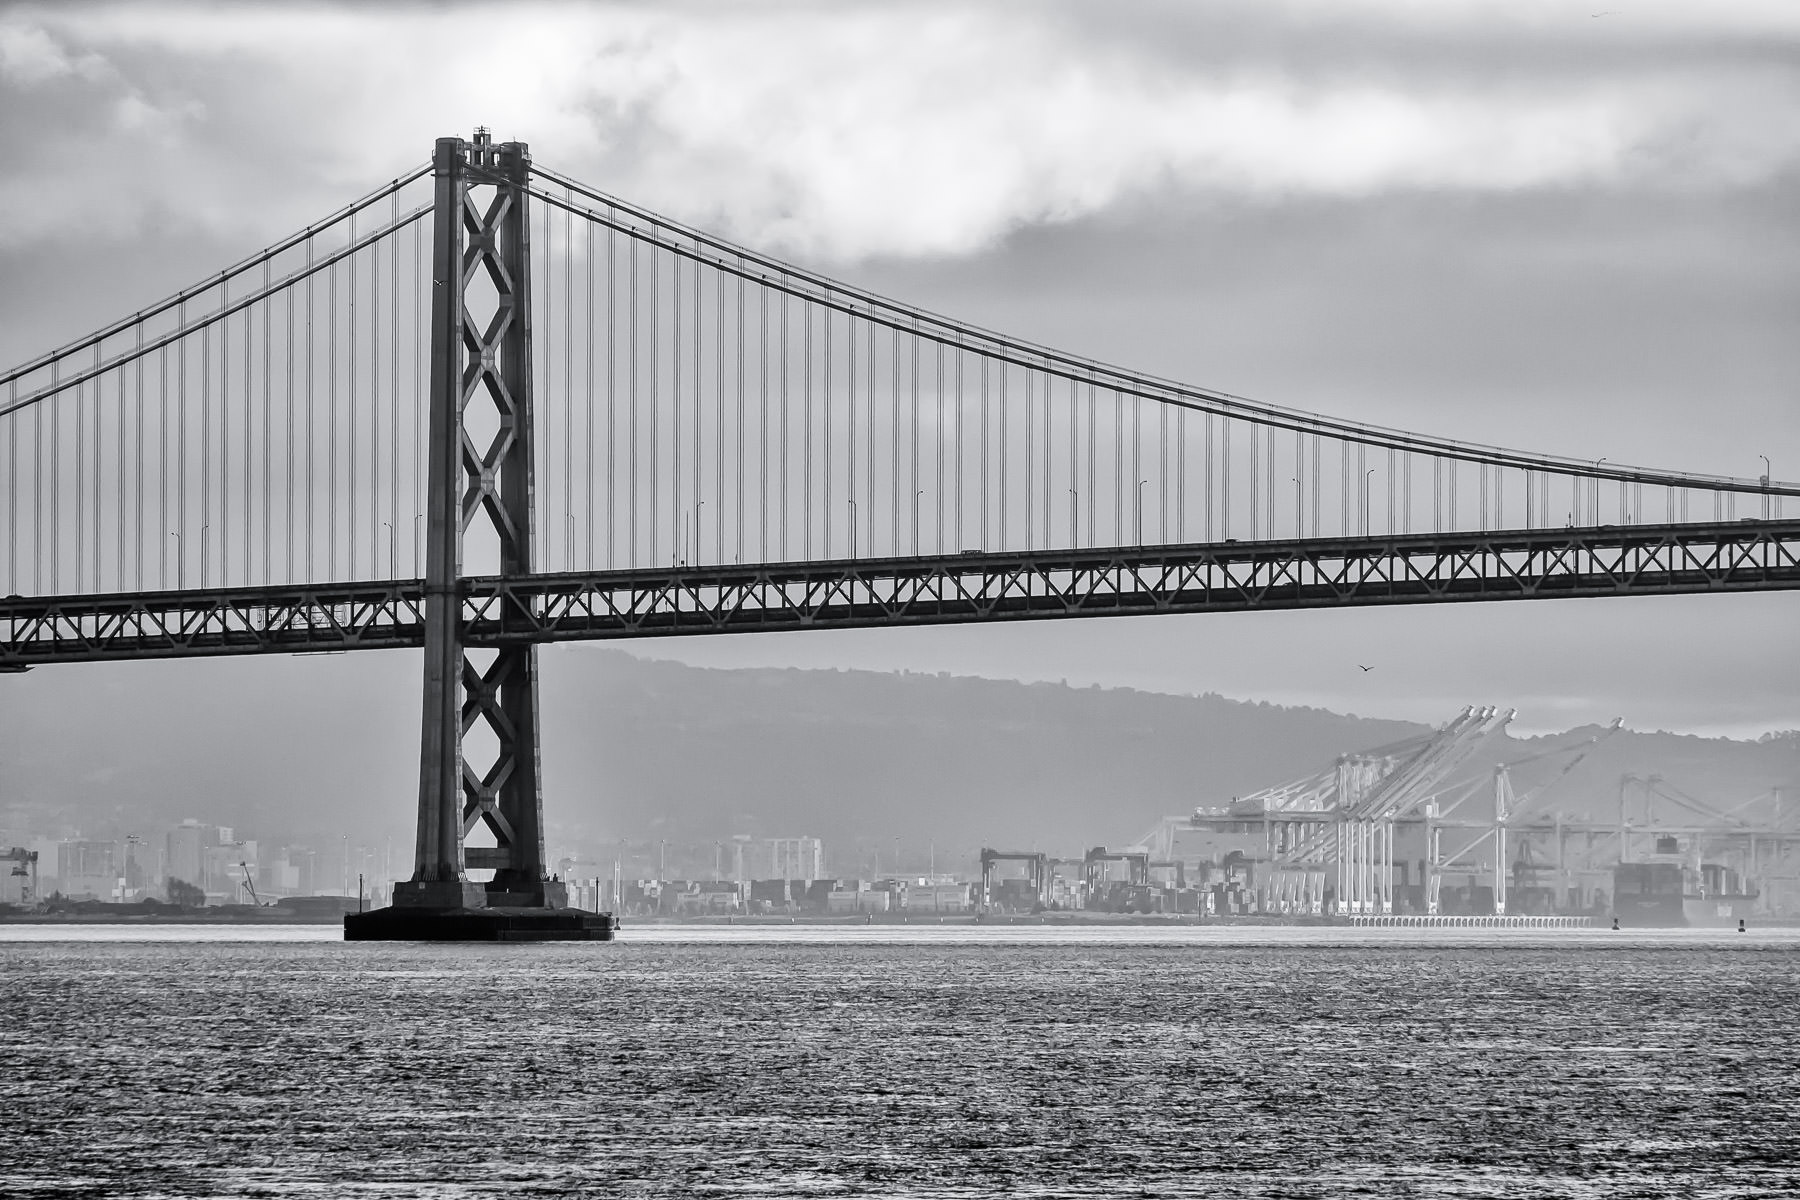 One of the towers of the San Francisco-Oakland Bay Bridge rises above San Francisco Bay.